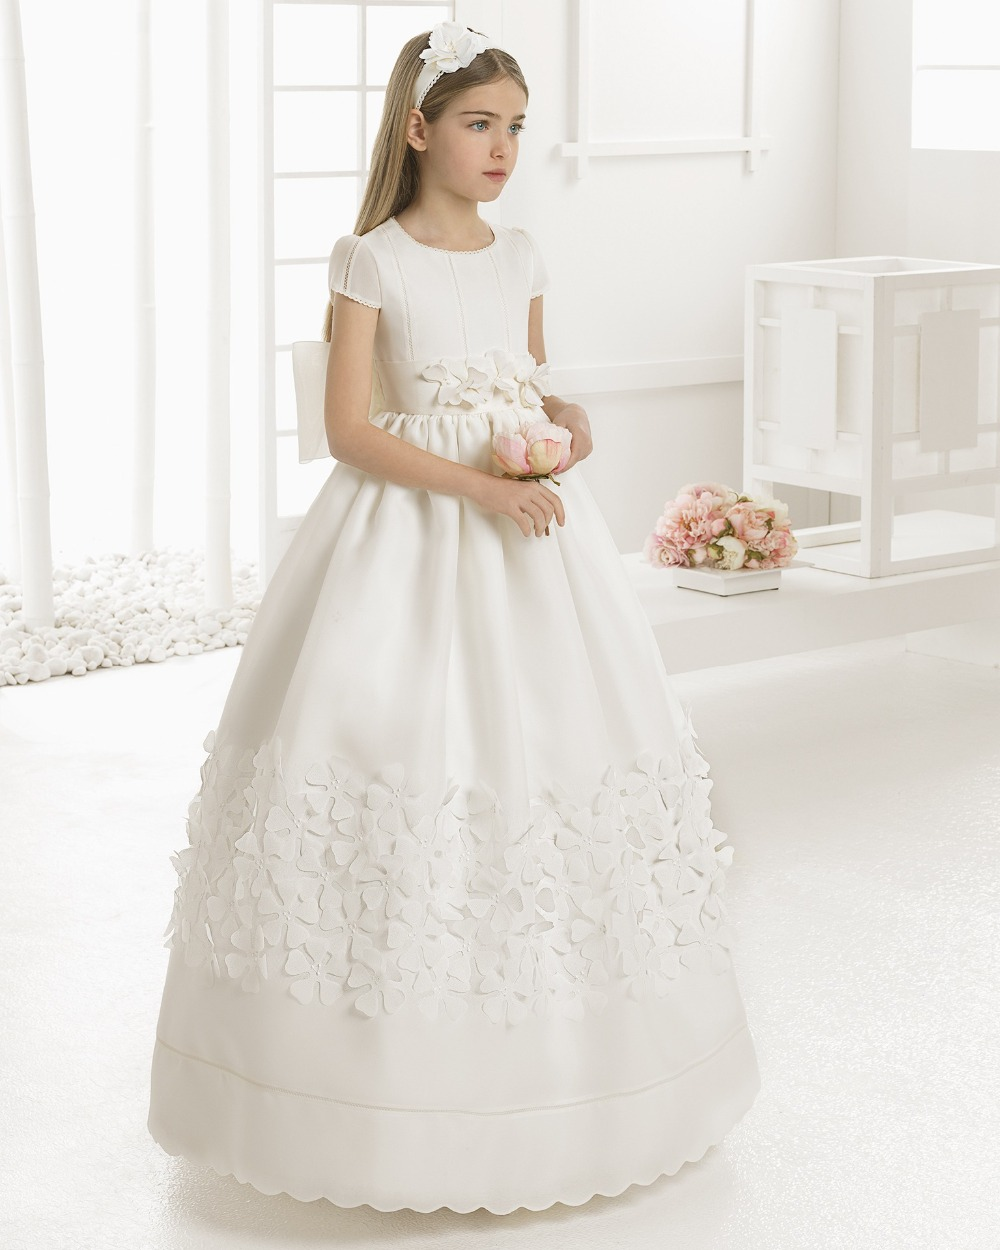 dddc09065ff1b US $84.15 15% OFF Girl Party Gown 2019 first communion dresses for girl  Satin Short Sleeve Flower Girl Dresses for weddings girls pageant  dresses-in ...